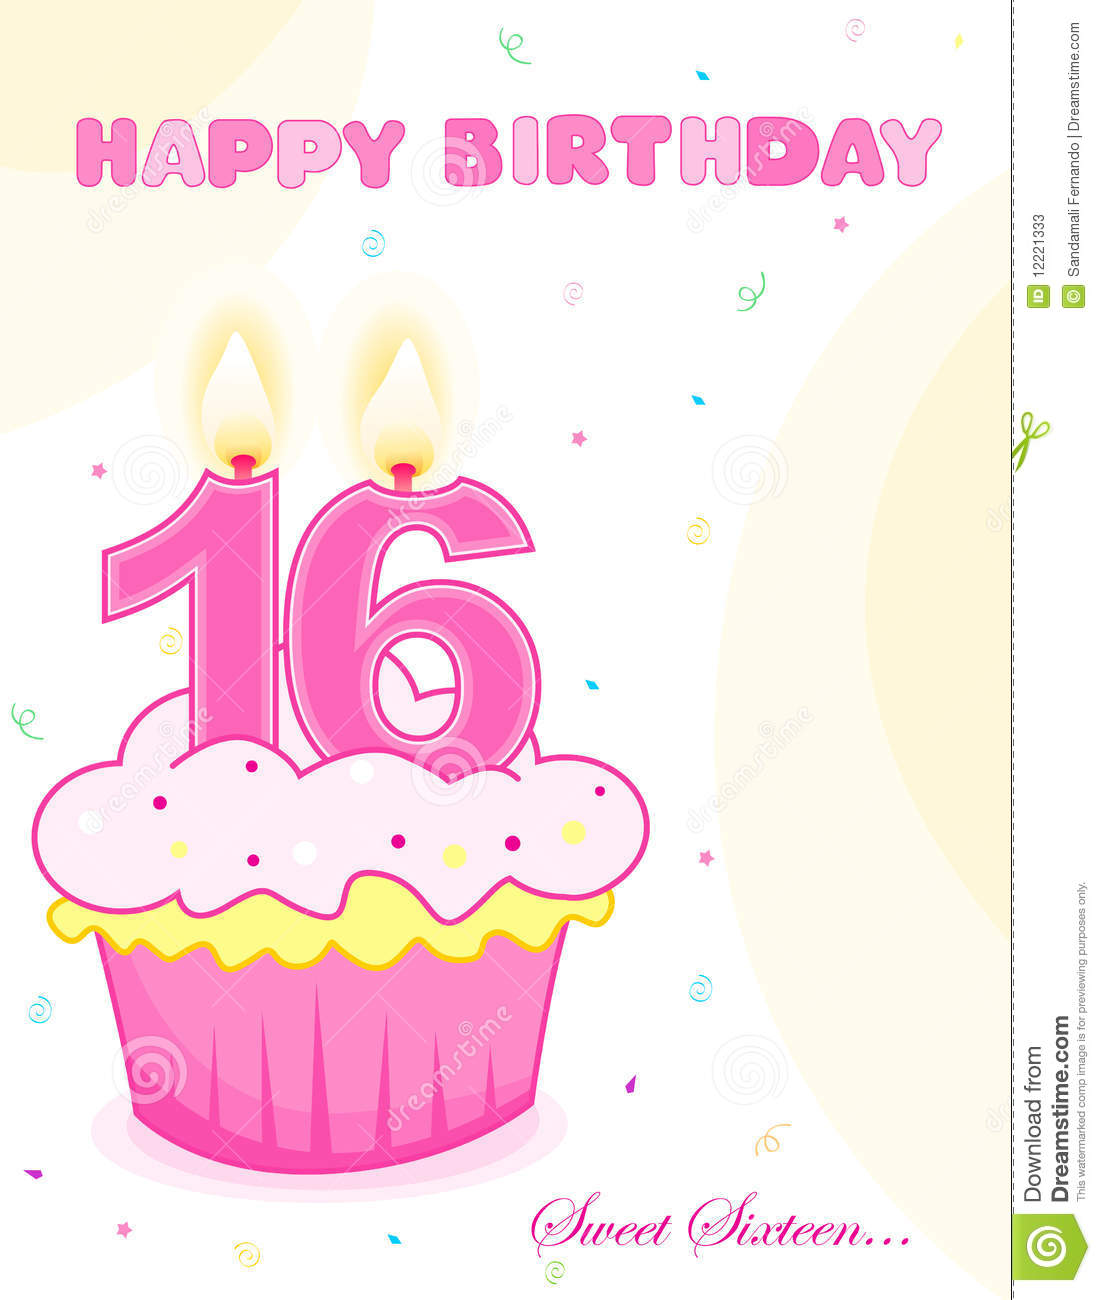 Sweet sixteen birthday cake greeting stock vector illustration of sweet sixteen birthday cake greeting bookmarktalkfo Choice Image